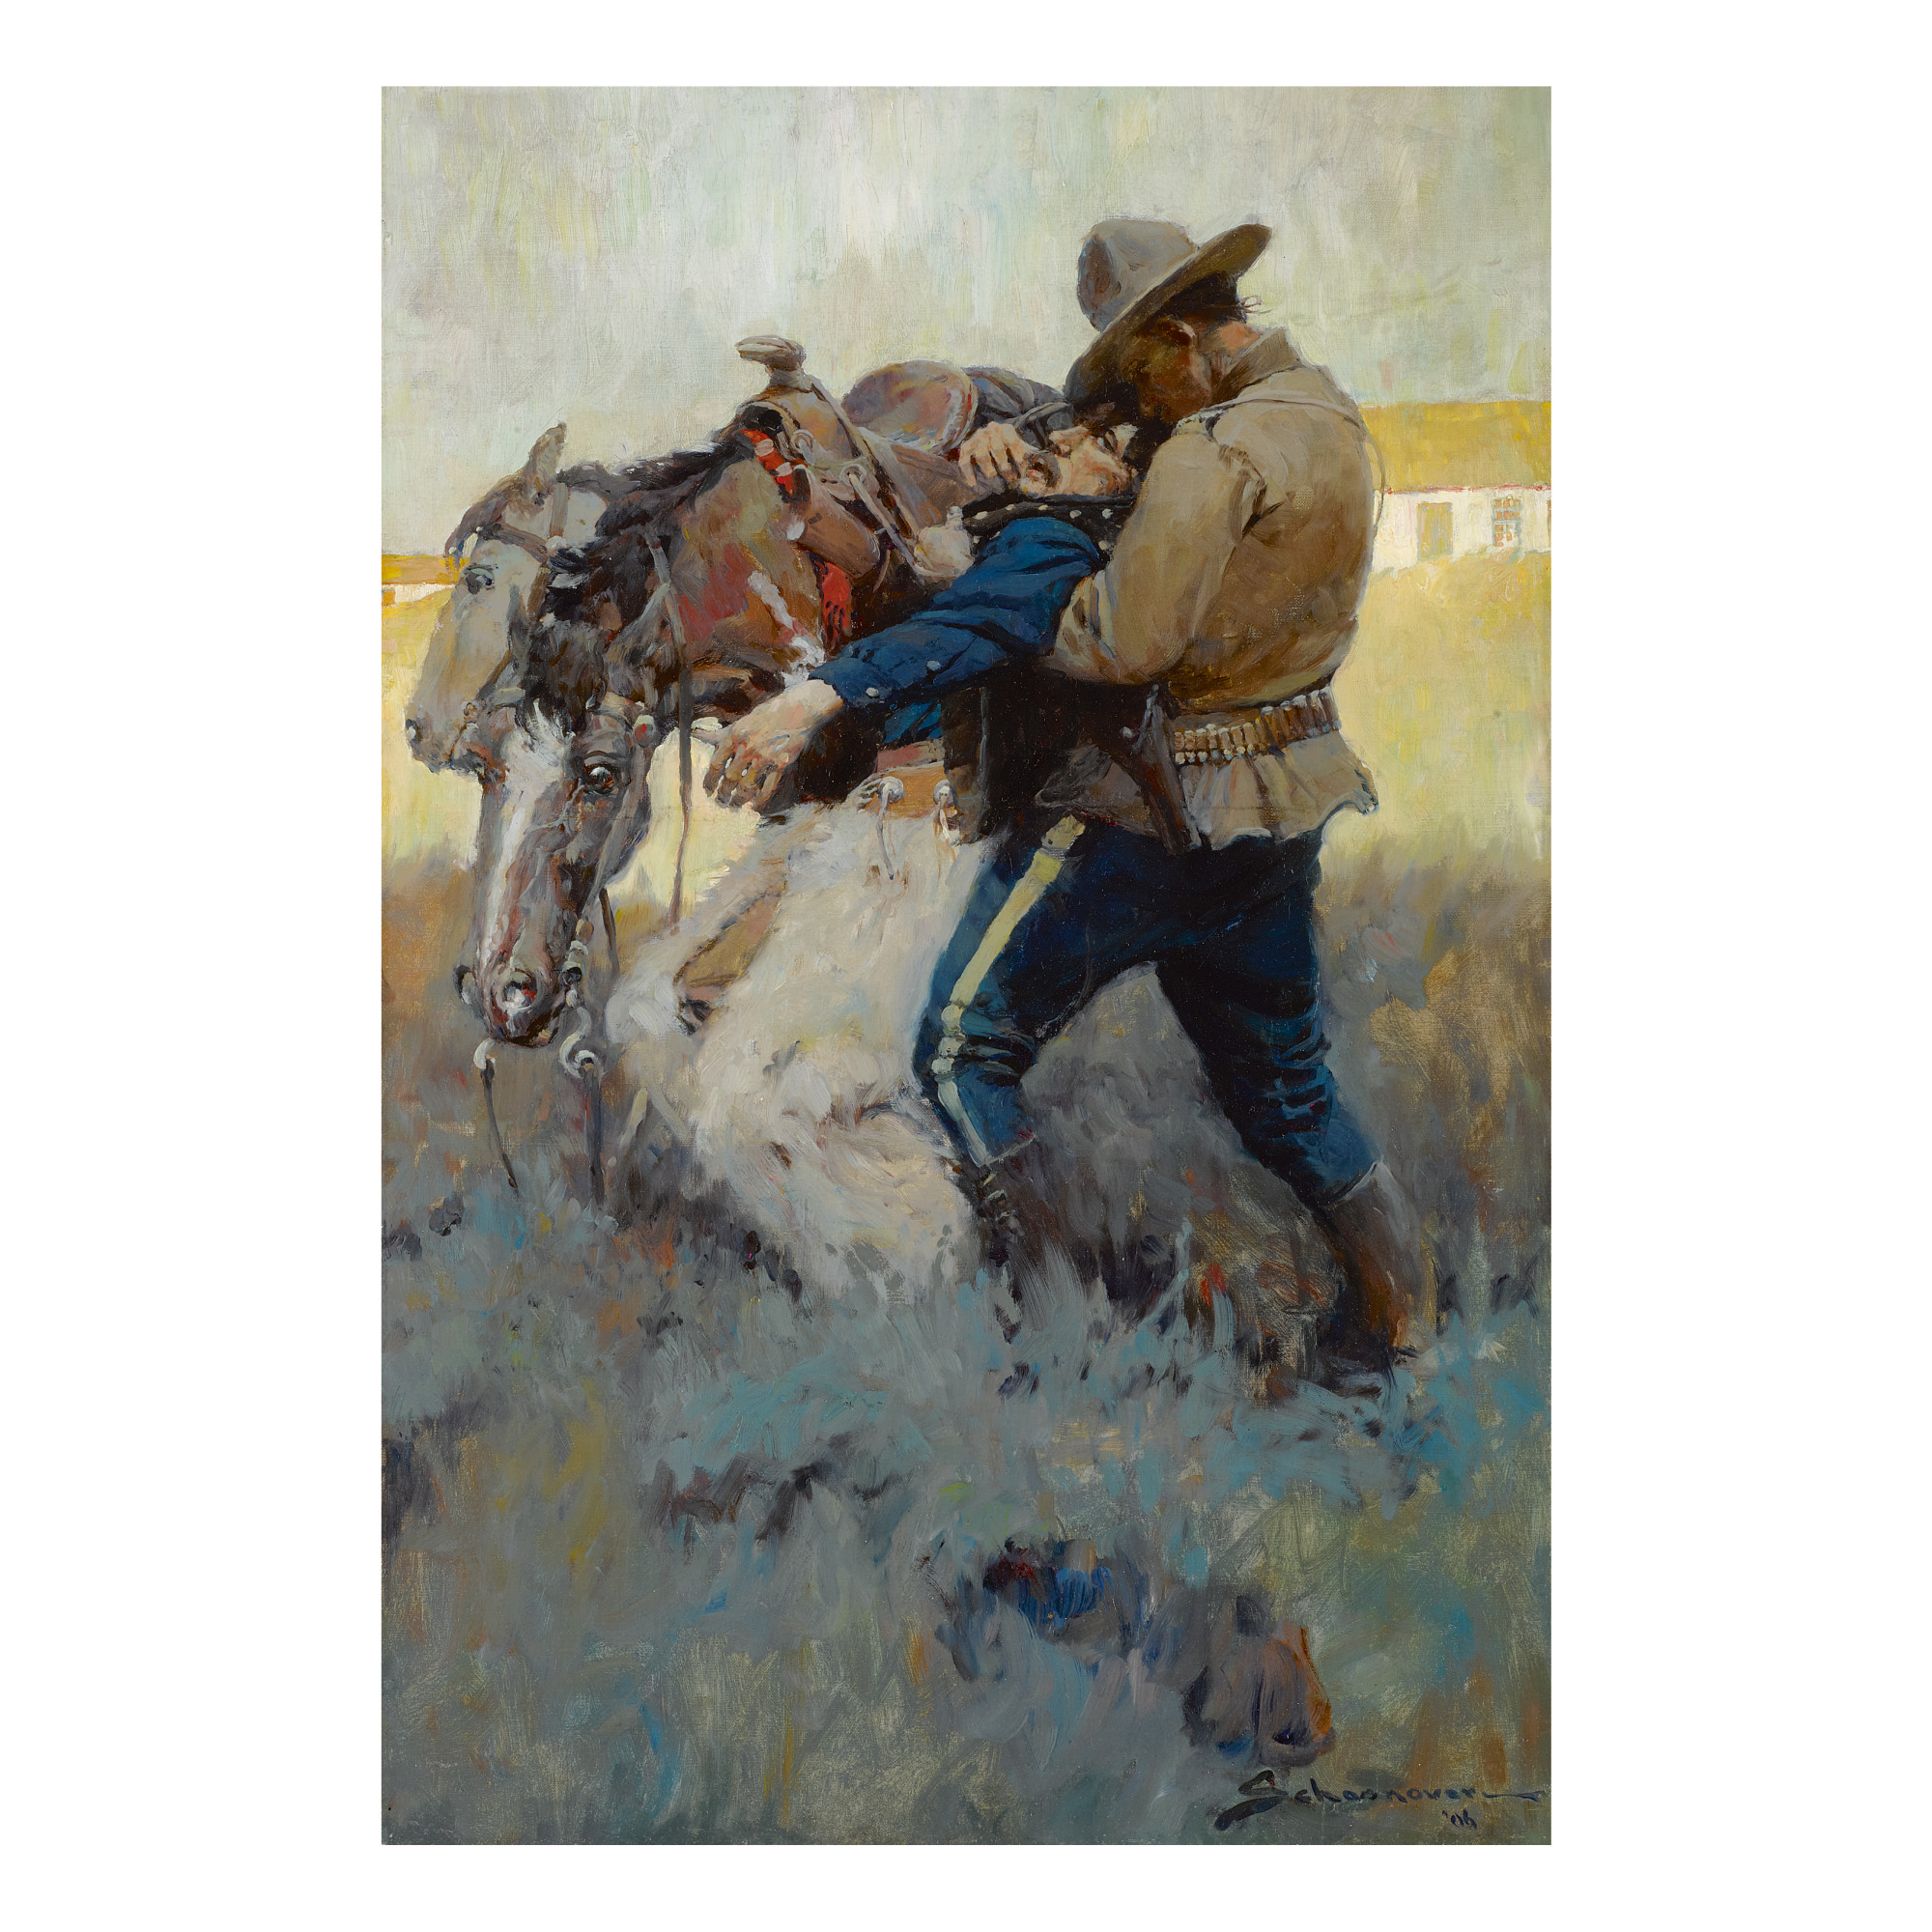 FRANK EARLE SCHOONOVER | GOT HERE ON TIME